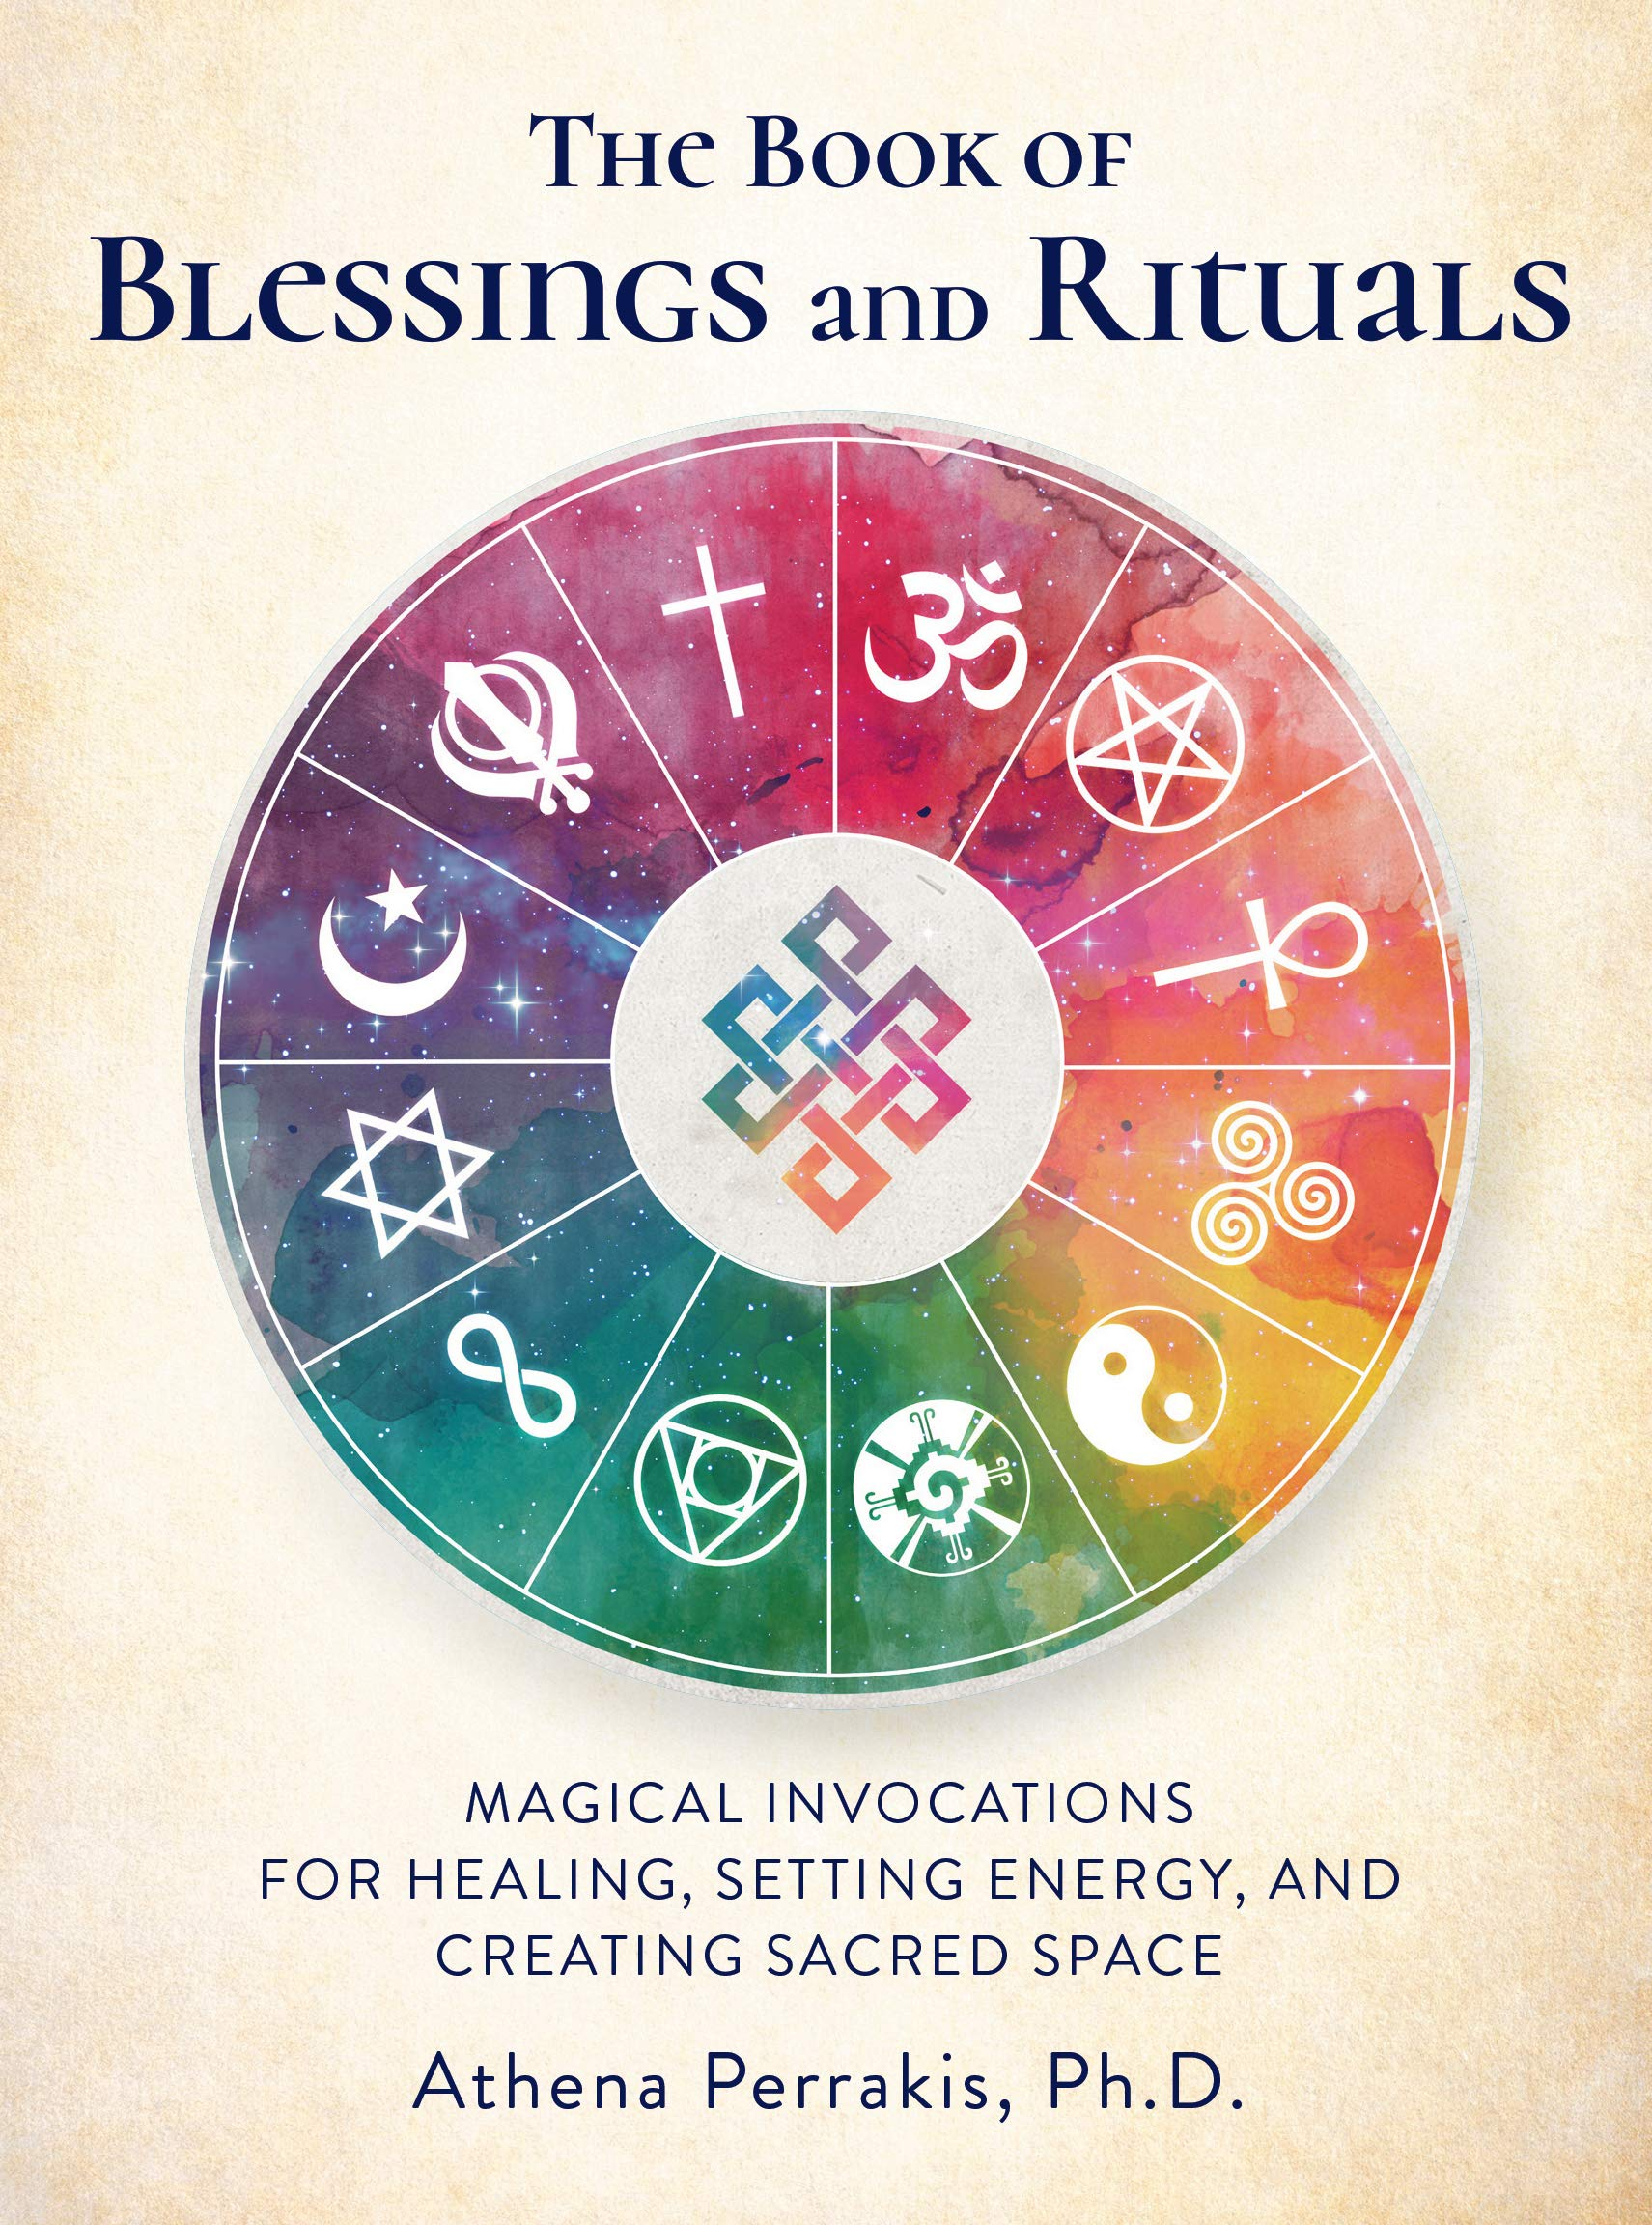 The Book of Blessings and Rituals (Athena Perrakis)